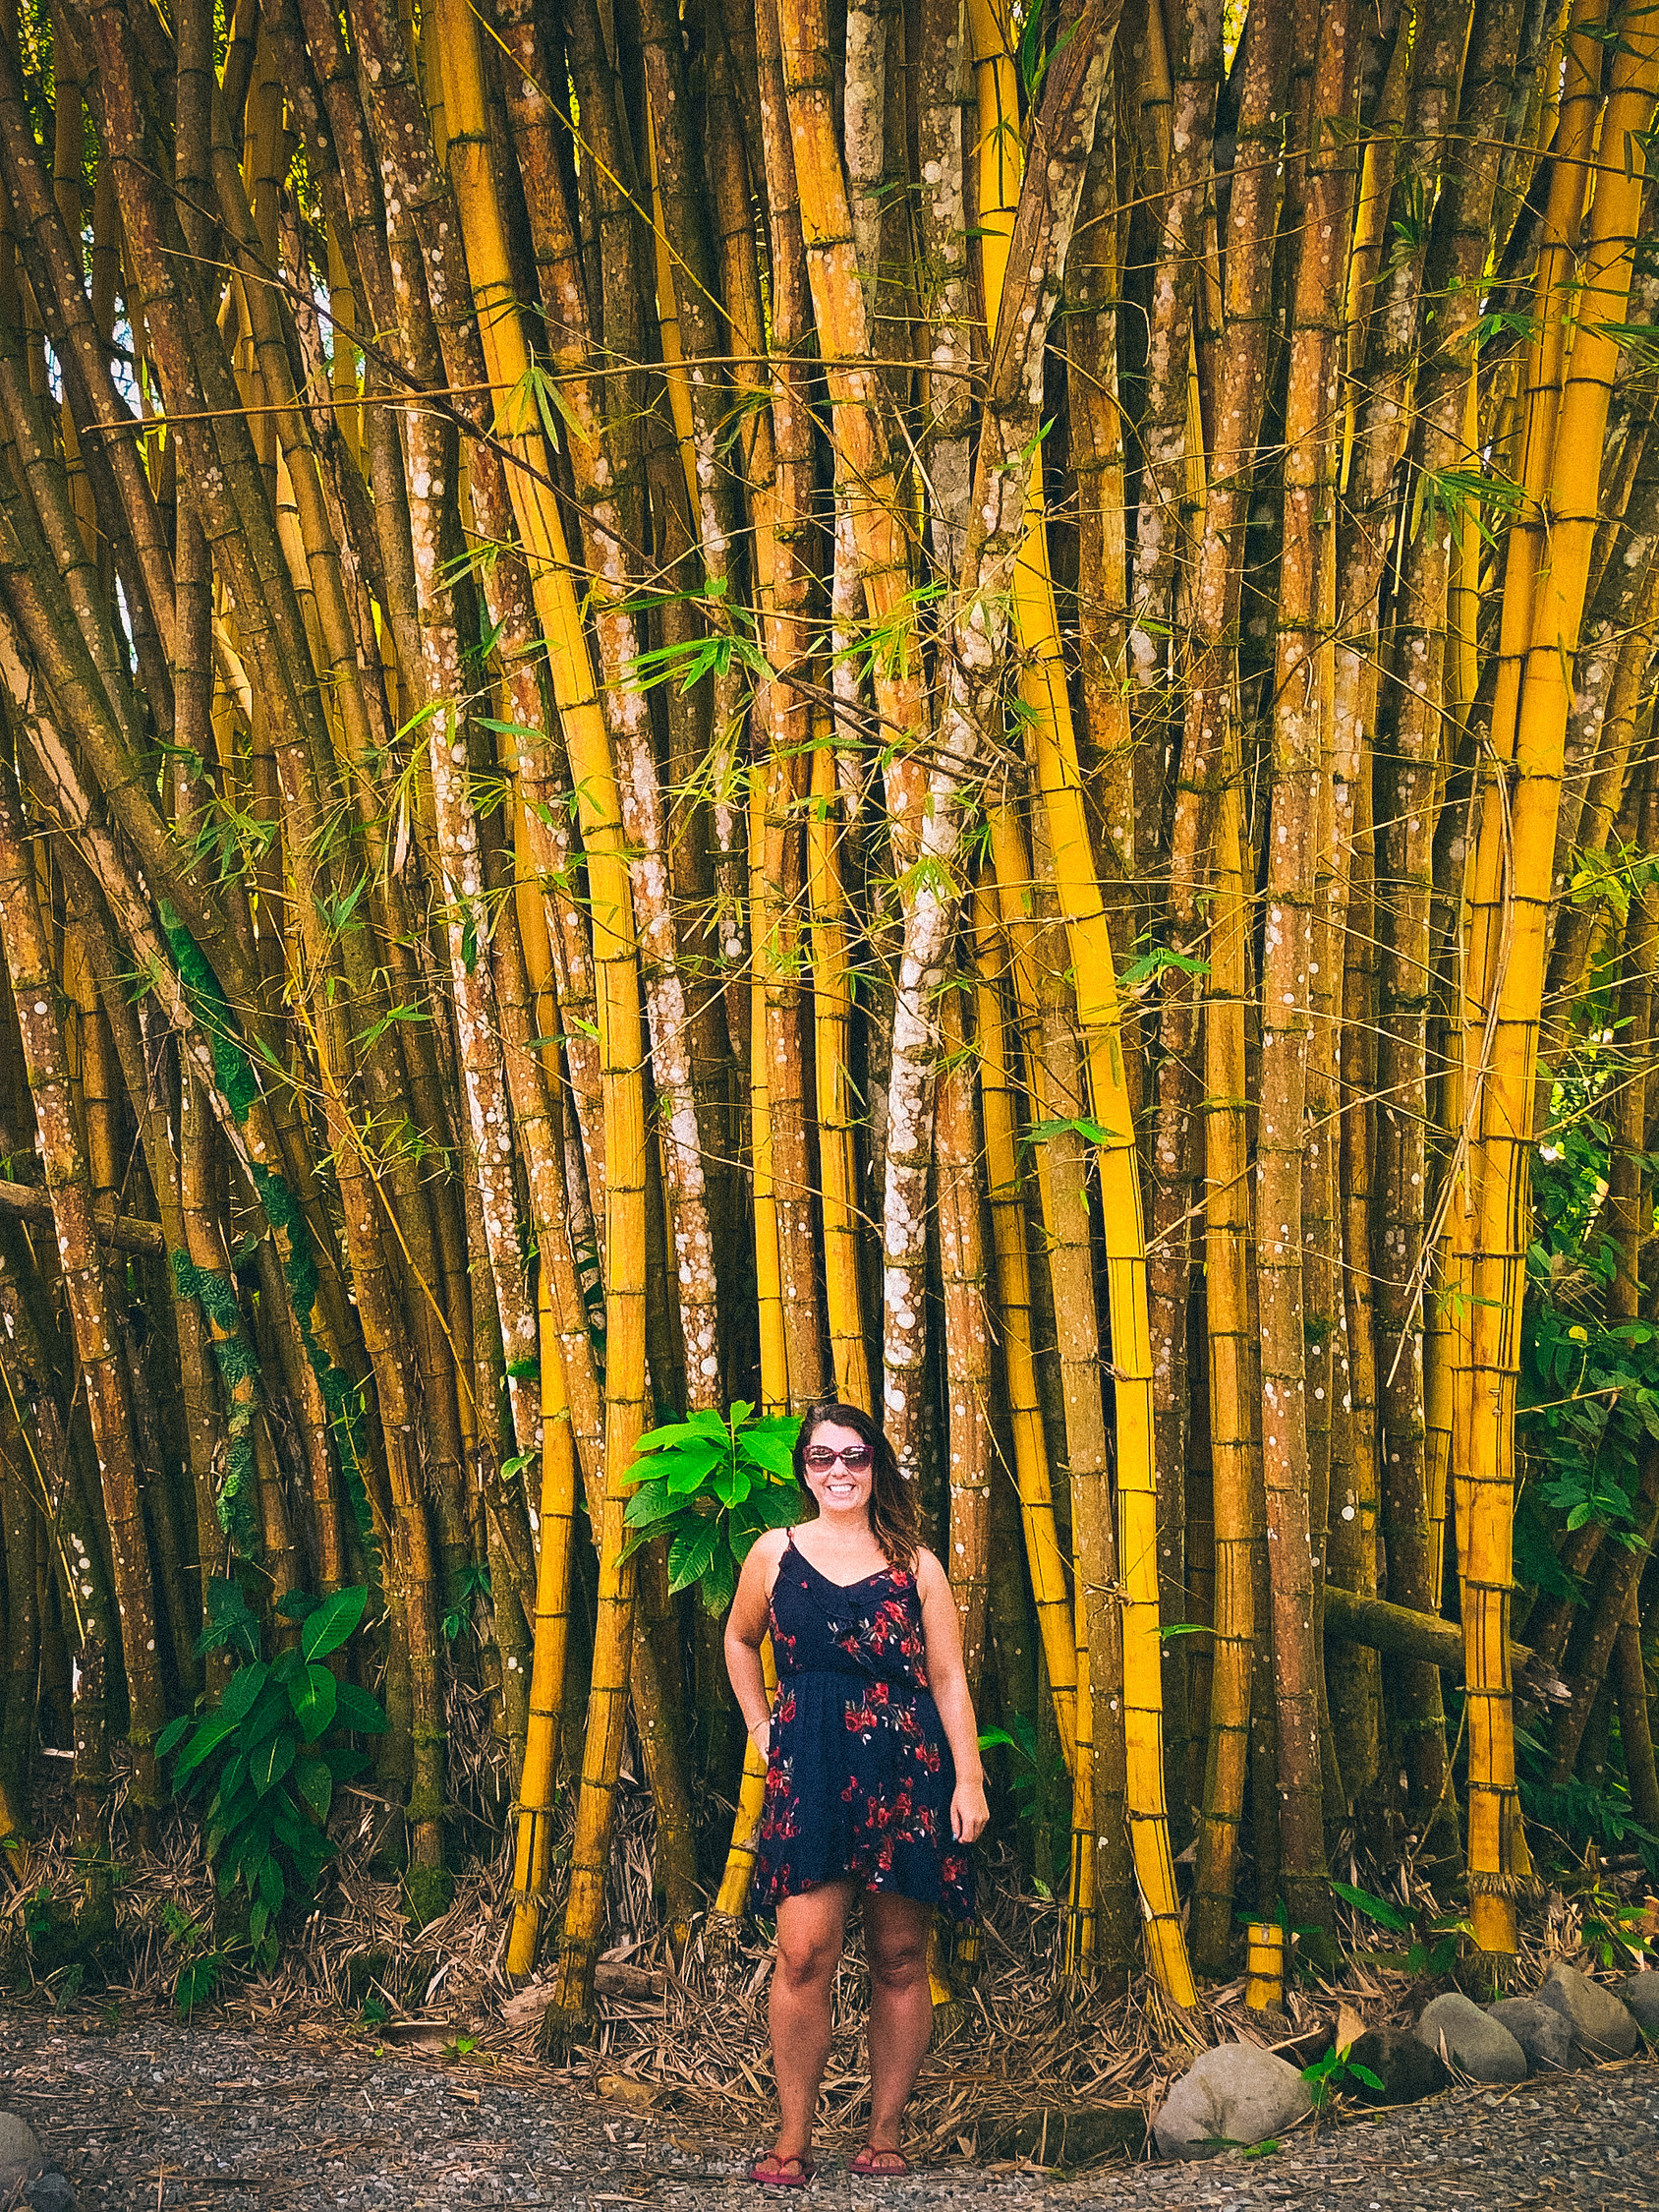 Ayngelina in Costa Rica, with bamboo behind her.